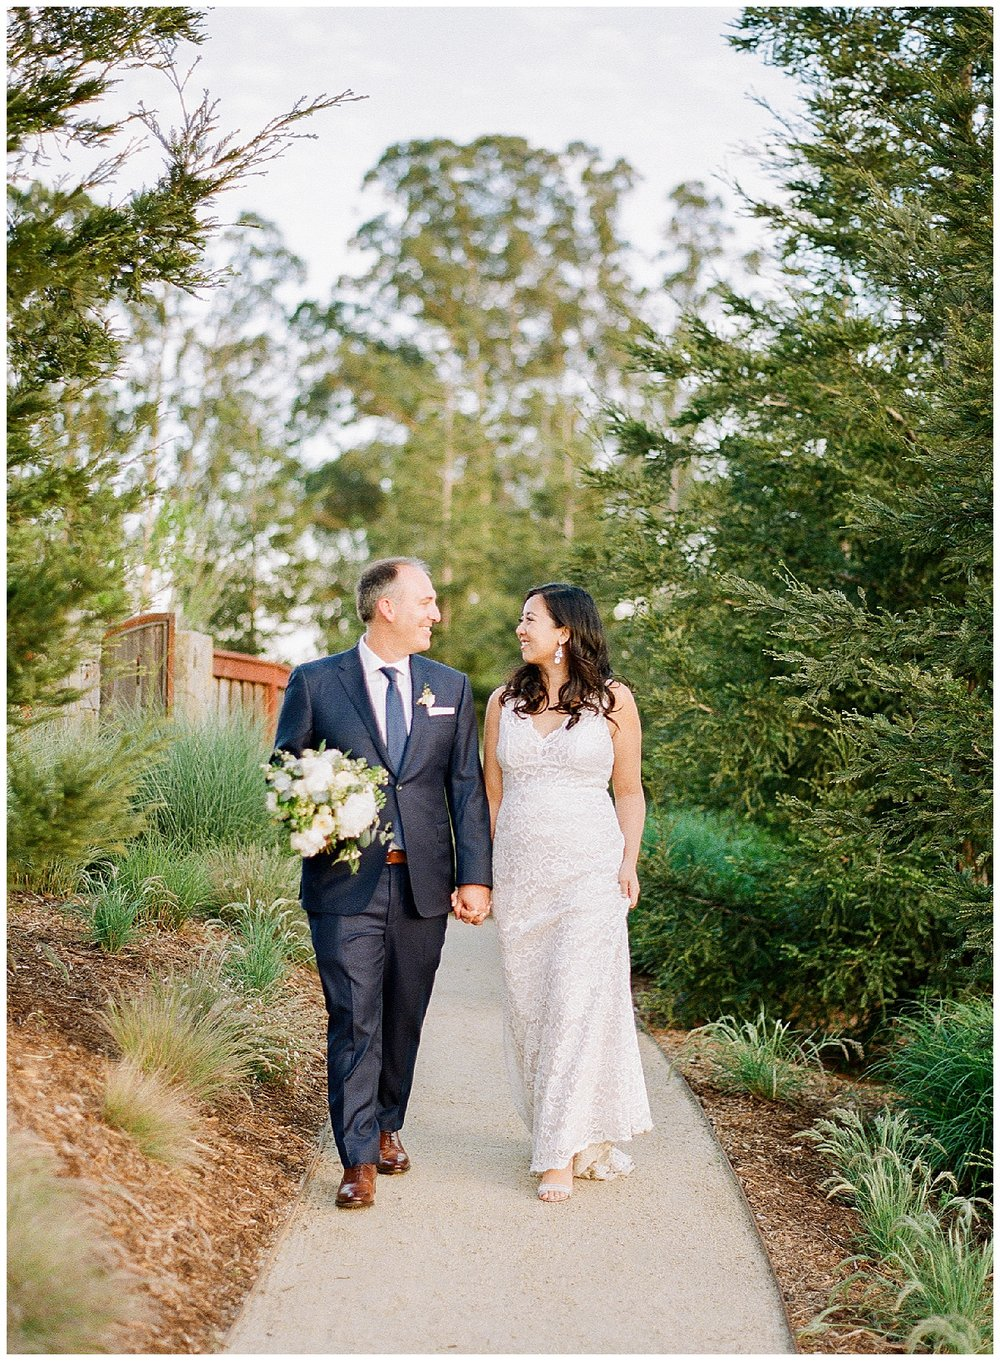 Janine_Licare_Photography_San_Francisco_Wedding_Photographer_Carneros_Tyge_Williams_Sonoma_Napa_0079.jpg